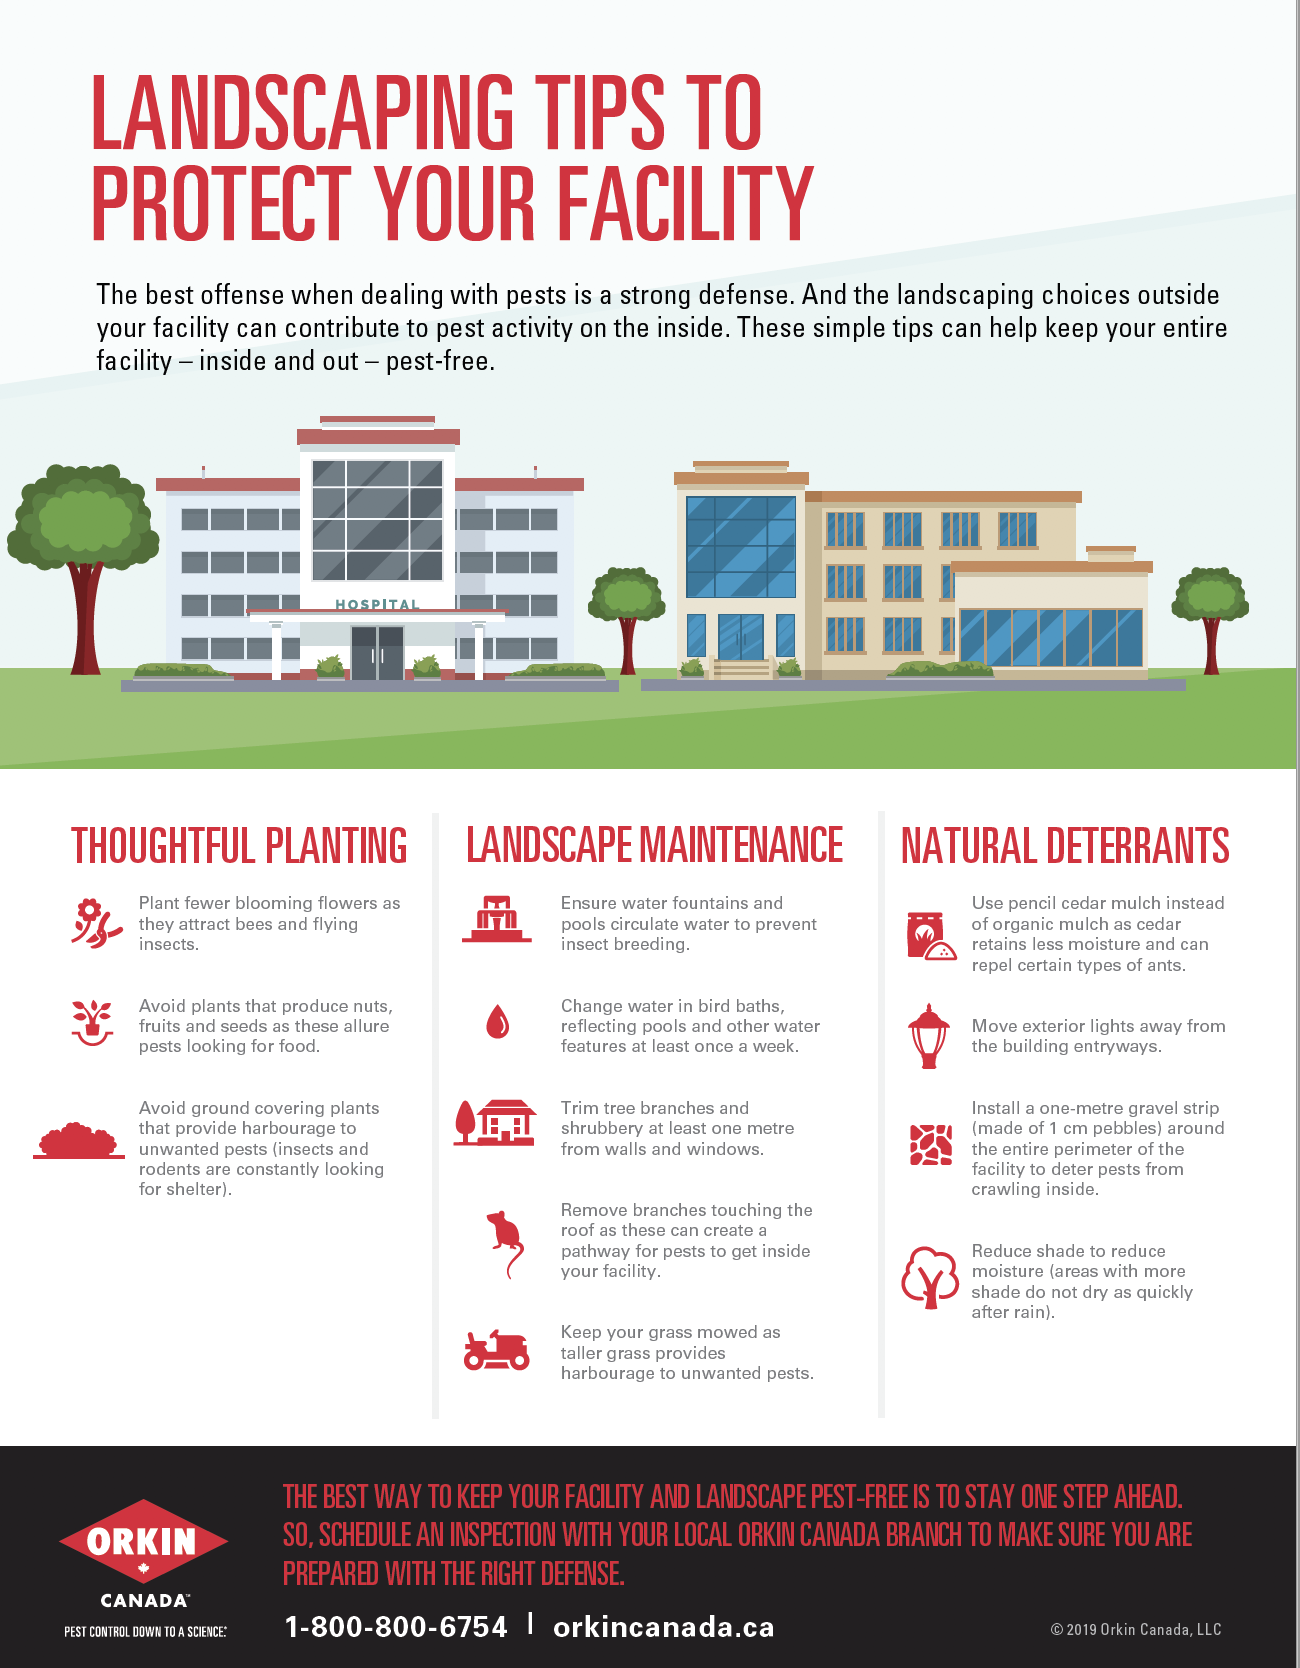 Landscaping tip sheet to protect your facility